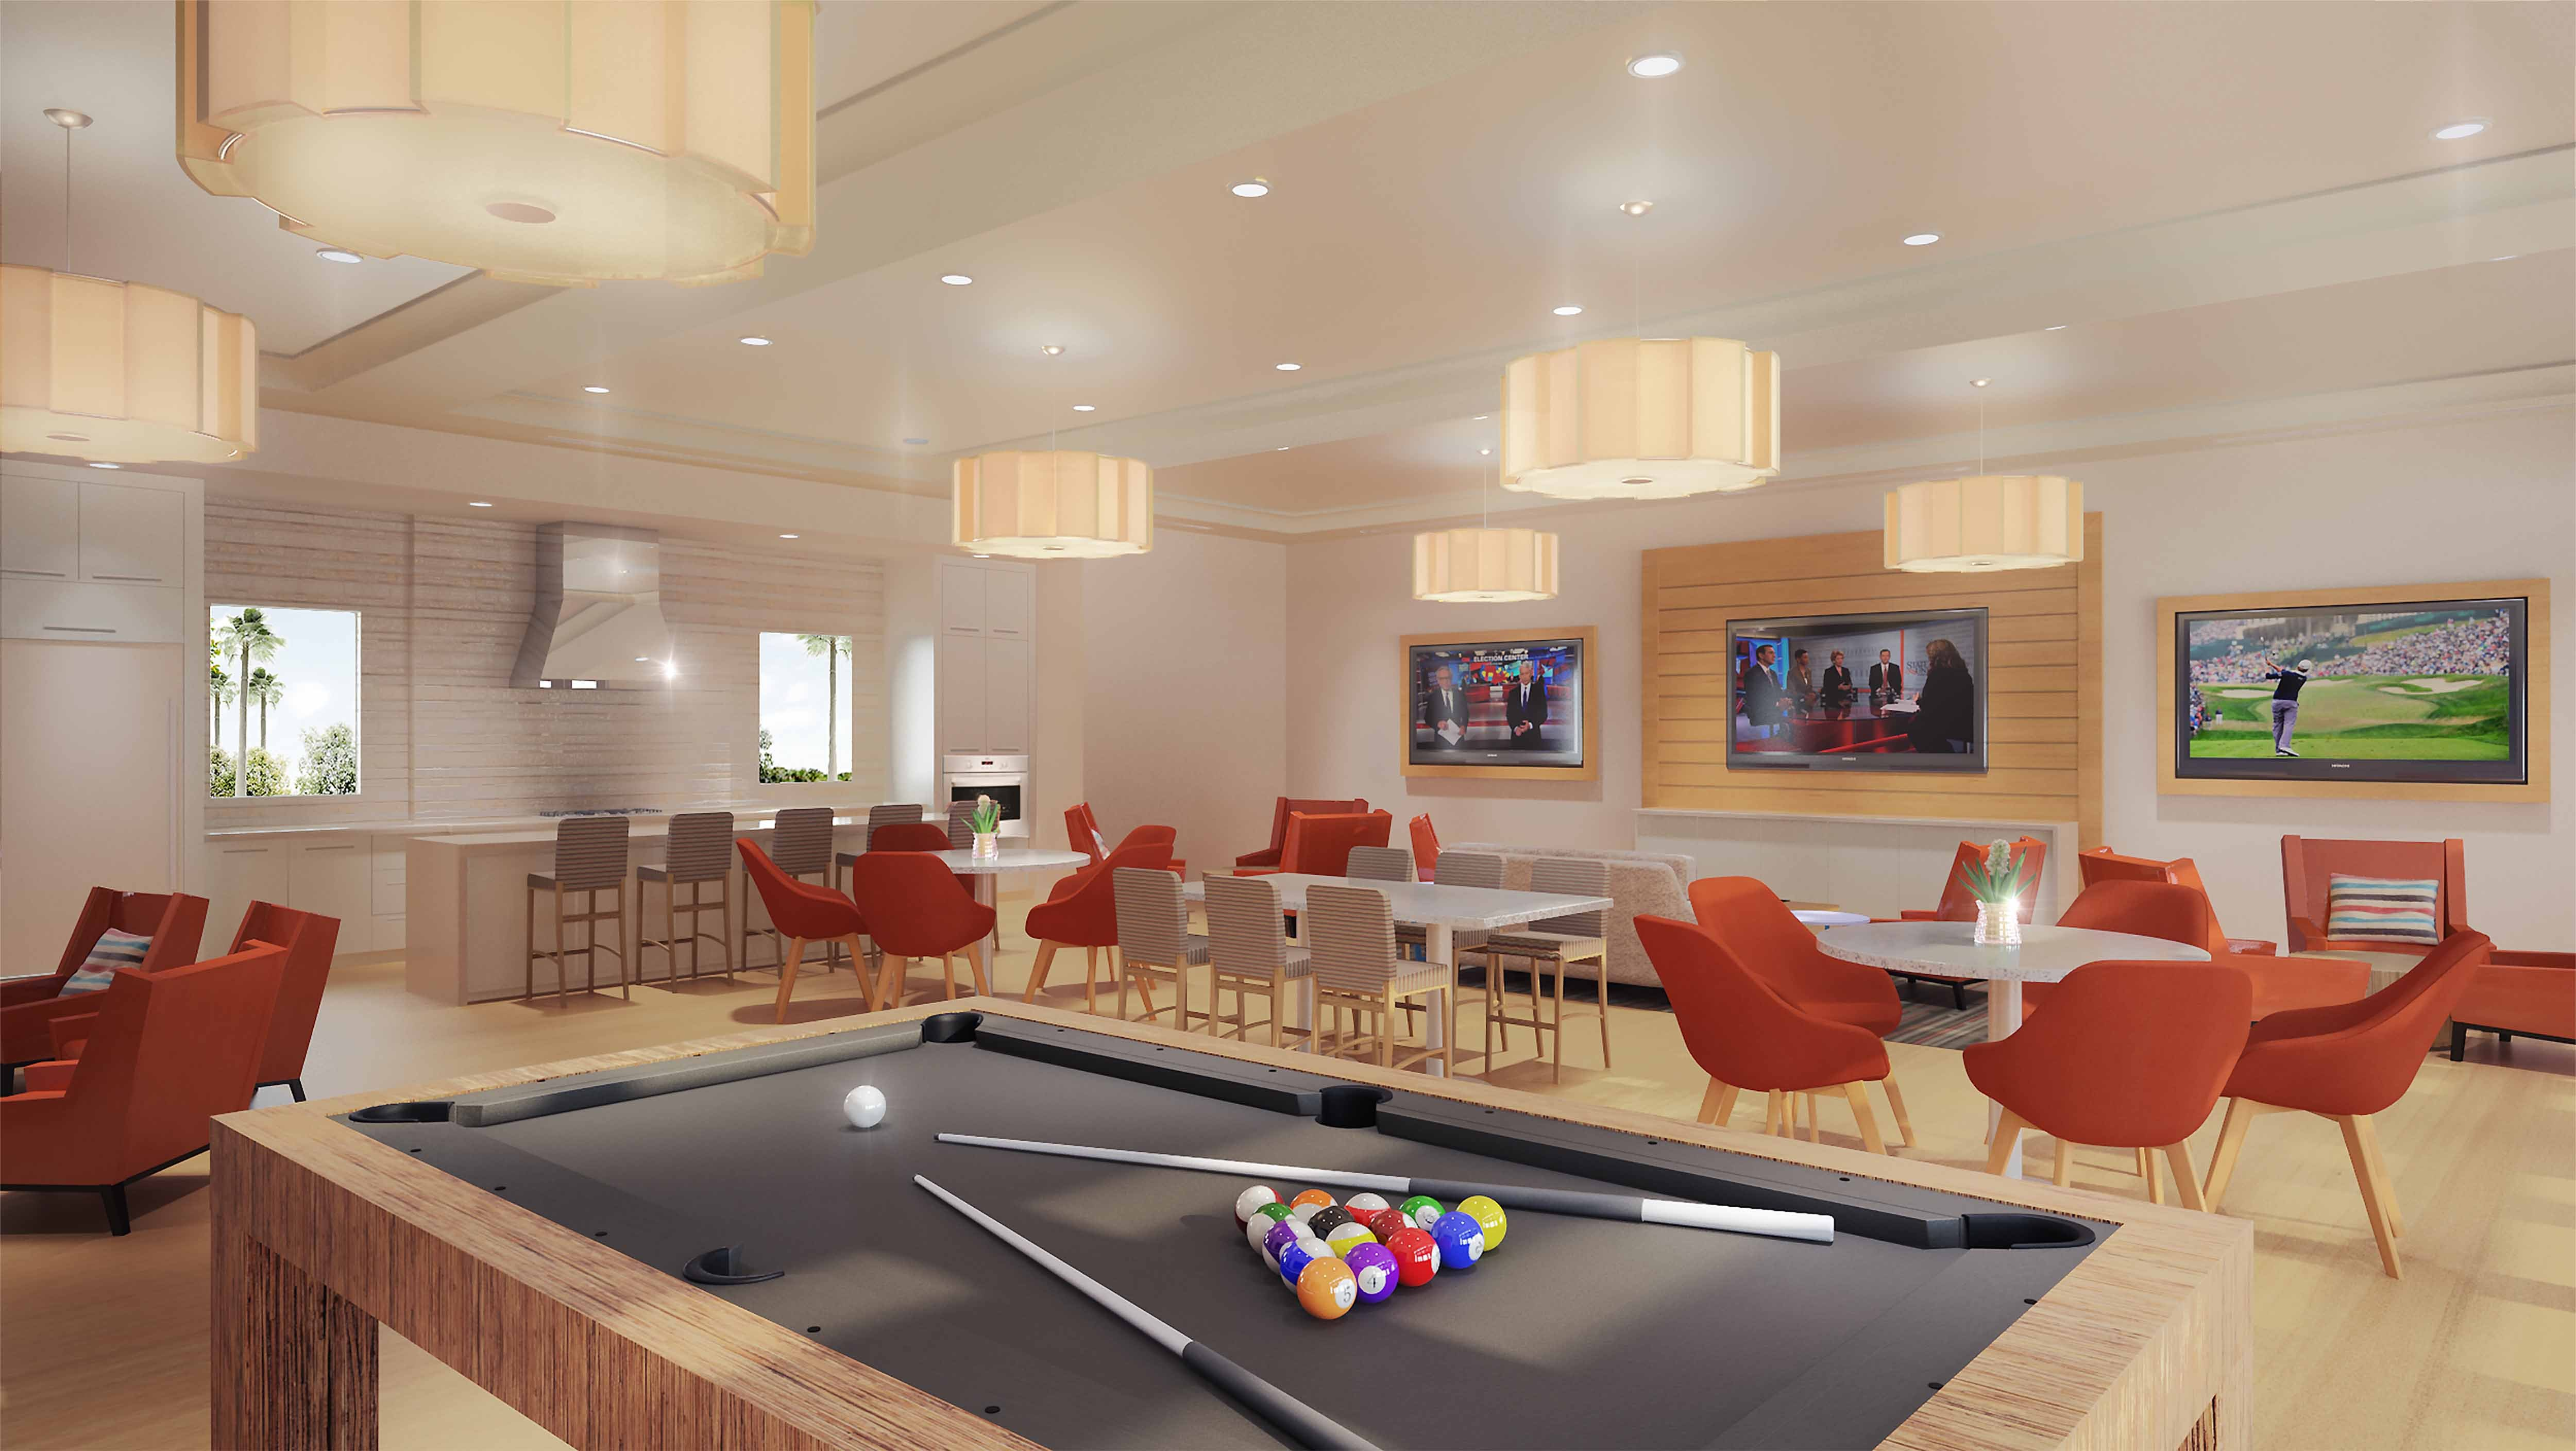 avella brings new apartment homes to north irvine business wire - Brown Apartment 2015